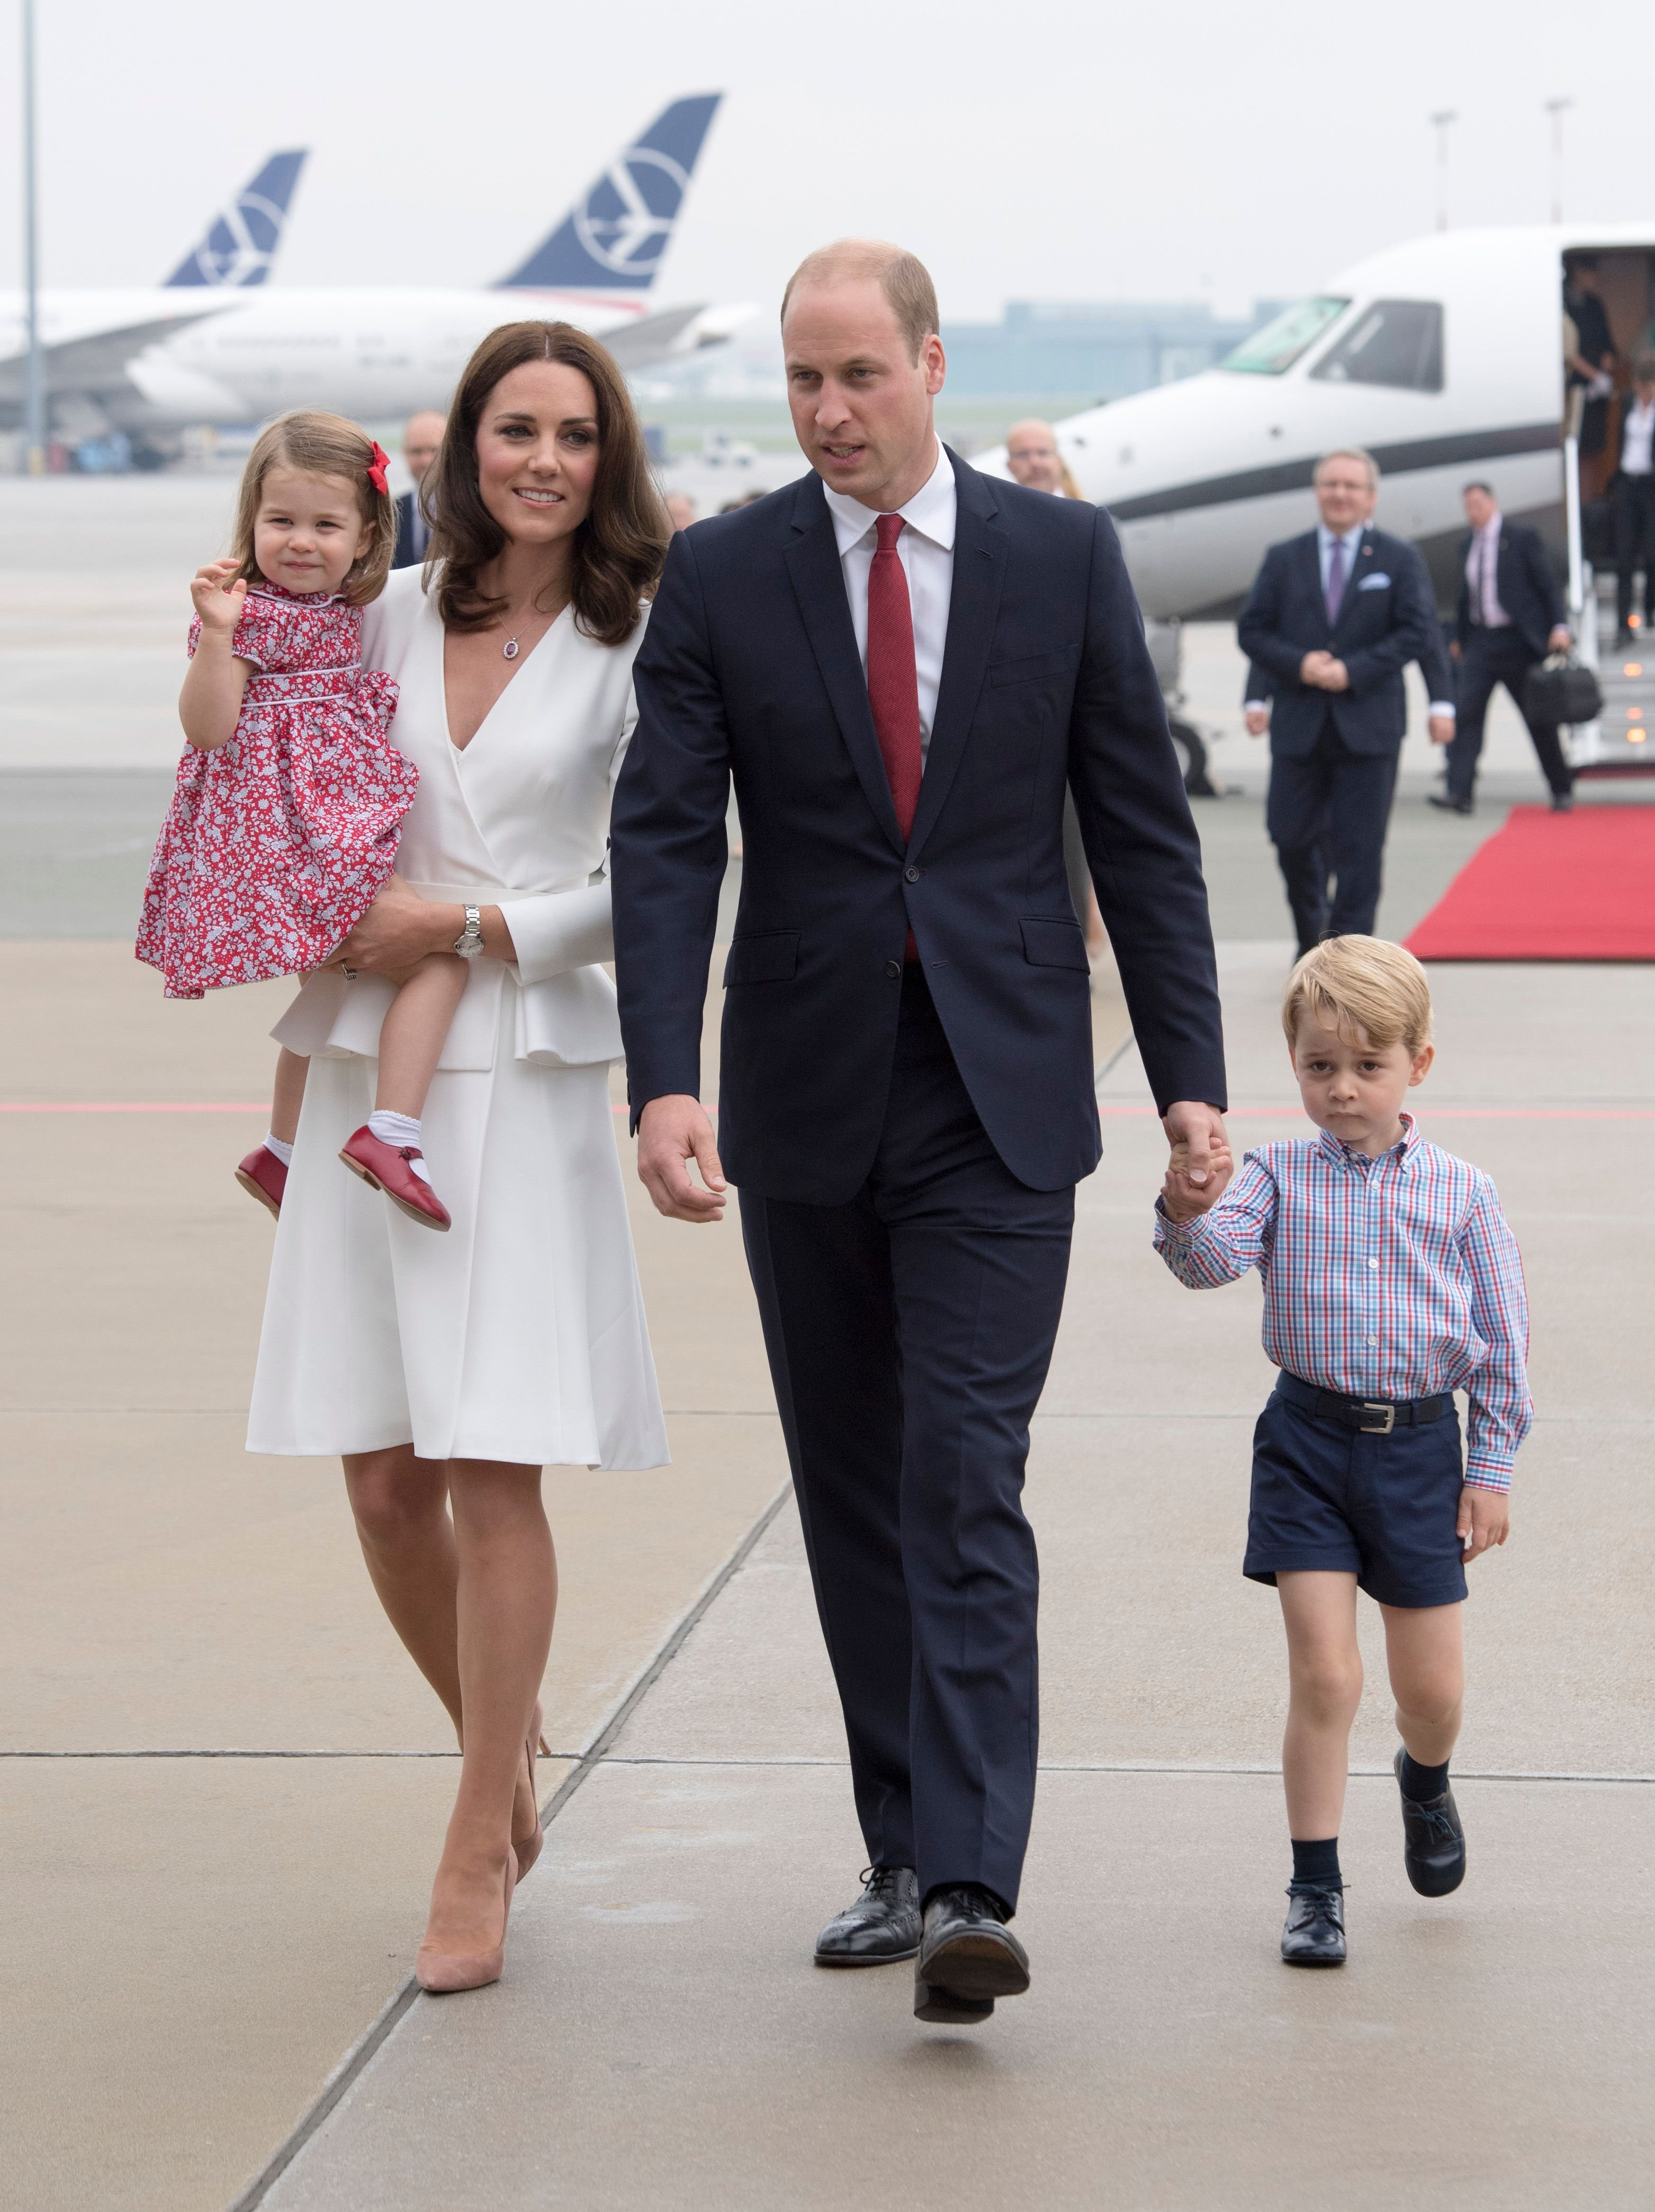 Prince William, Kate Middleton with their children Prince George and Princess Charlotte arrive at Warsaw airport to start a 3 day tour on July 17, 2017 in Warsaw, Poland | Photo: Getty Images